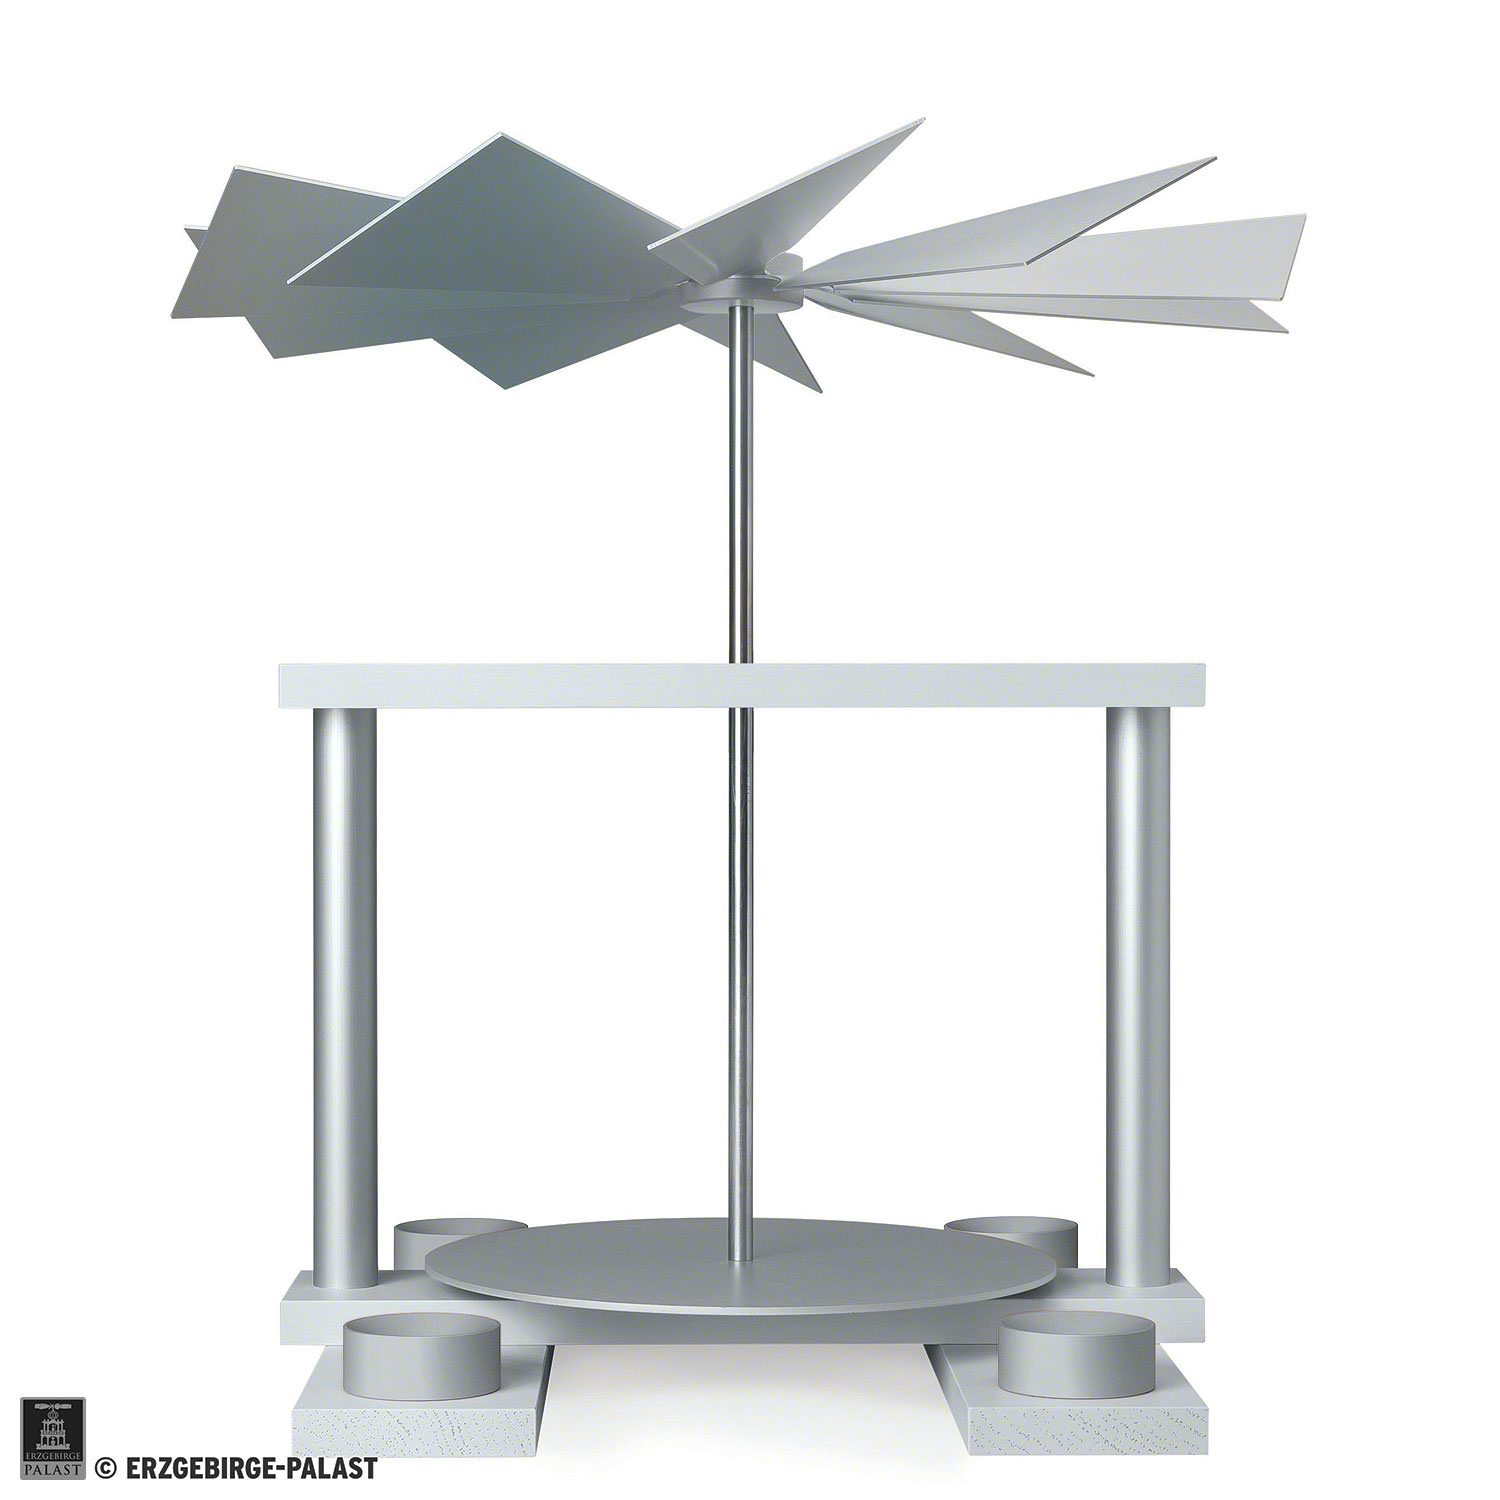 Christmas-Pyramids 1-tier Pyramids 1-Tier Pyramid LUMA without Figurines, White - 32 cm / 12.6 inch